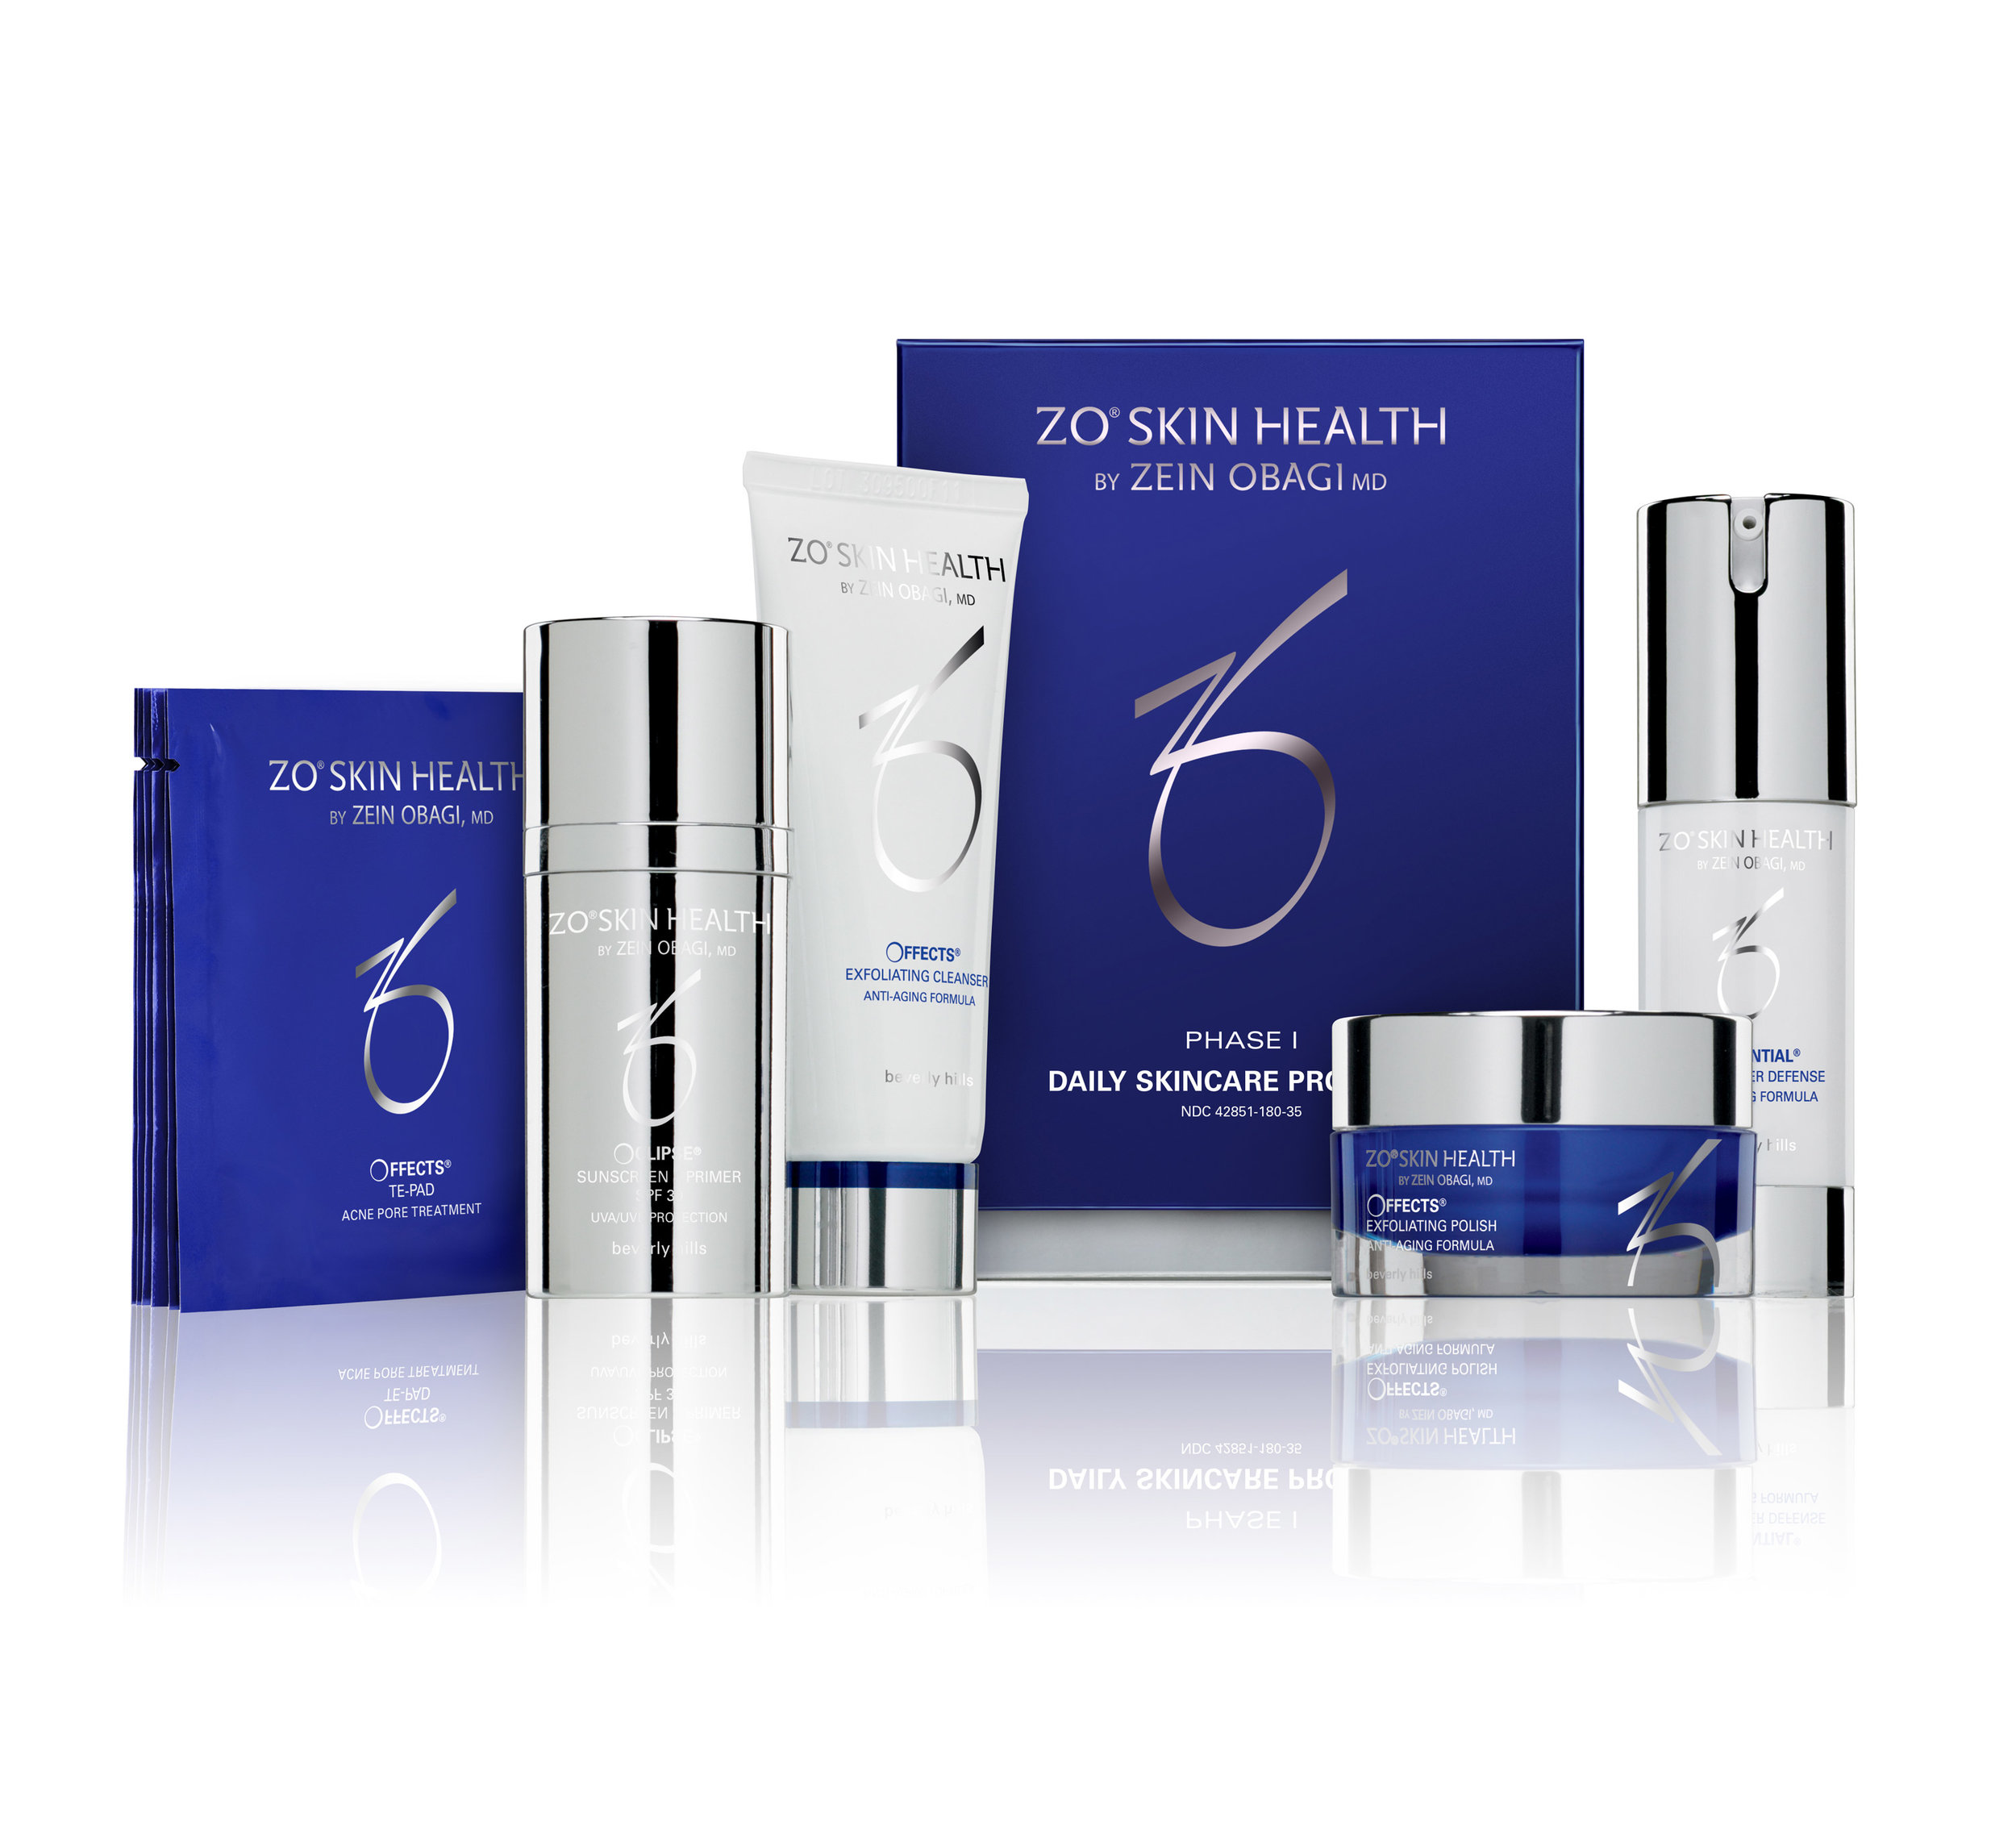 Phase-1-Daily-Skincare-Program-Product-and-Box.jpg